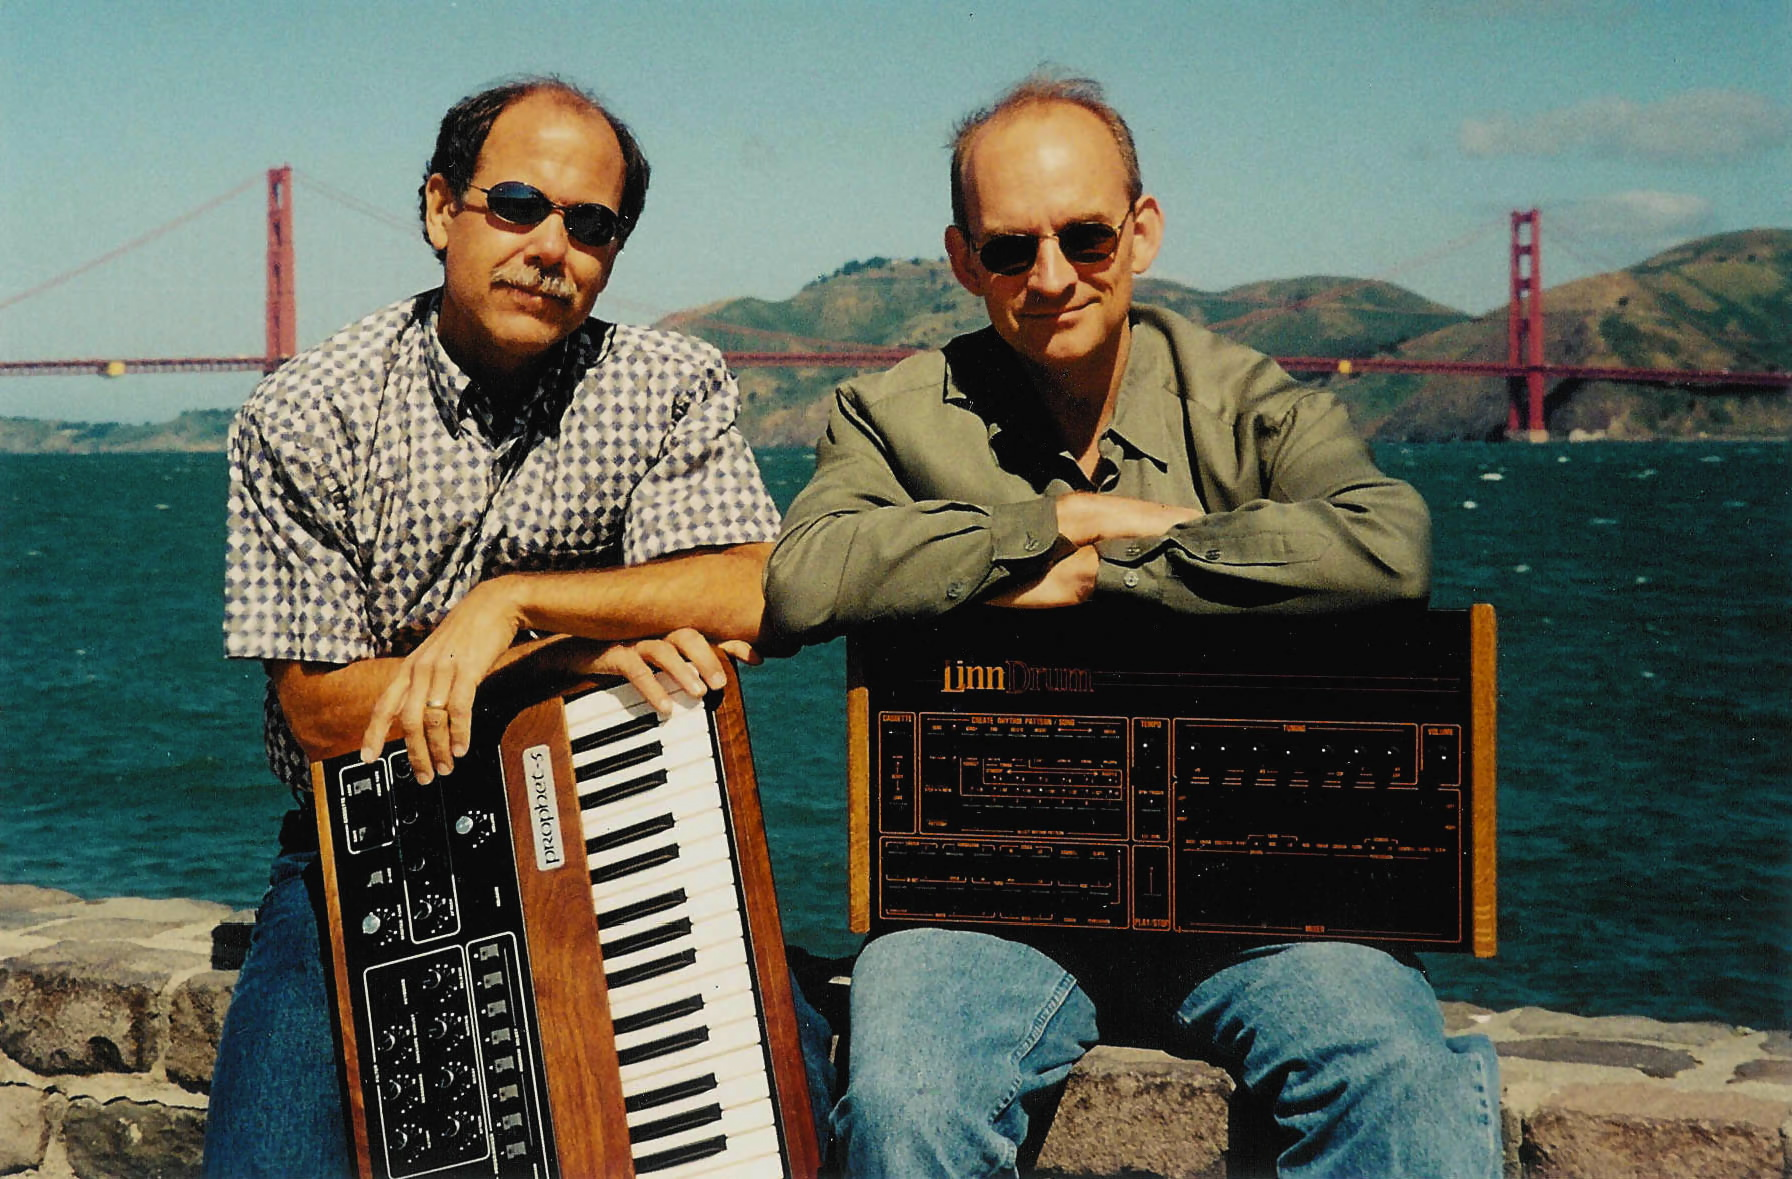 ROGER LINN/DAVE SMITH  >>>>>   T E M P E S T   <<<<<   COMPRA CONJUNTA?? Roger-Dave-Smith-with-products_2